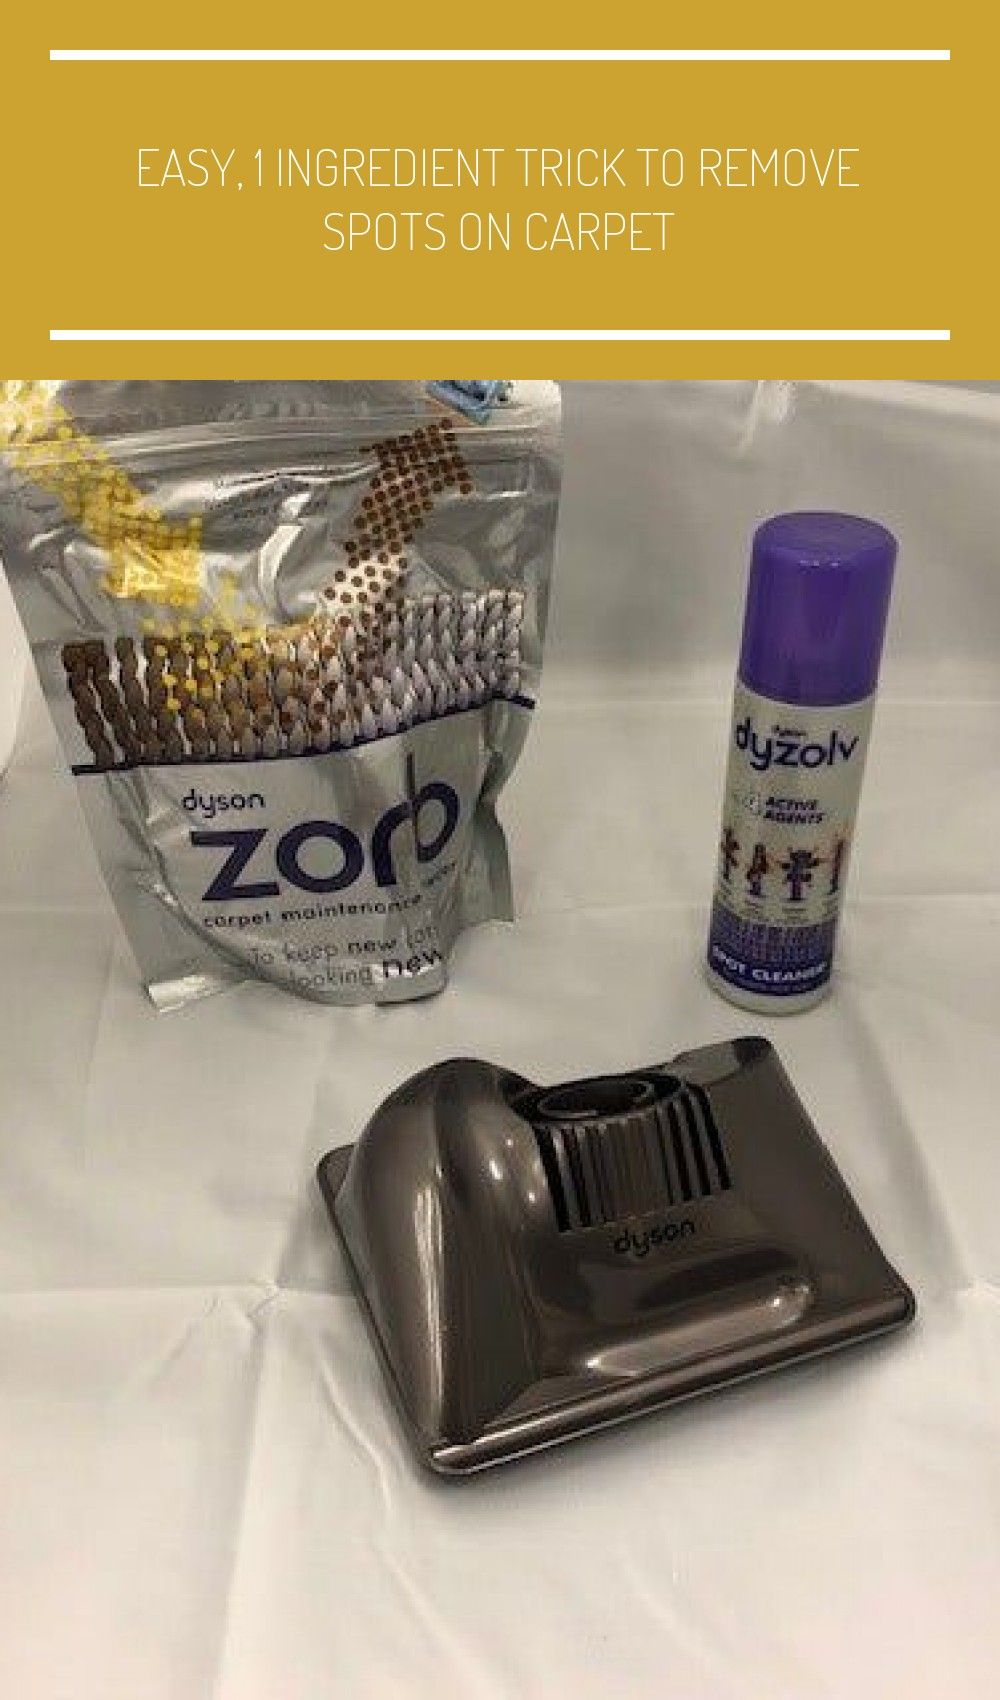 Dyson Zorb Carpet Maintenance Powder Spot Cleaner Carpet Cleaning Attachment Selling This Lot Of In 2020 Natural Carpet Cleaners Carpet Spot Cleaner Rugs On Carpet